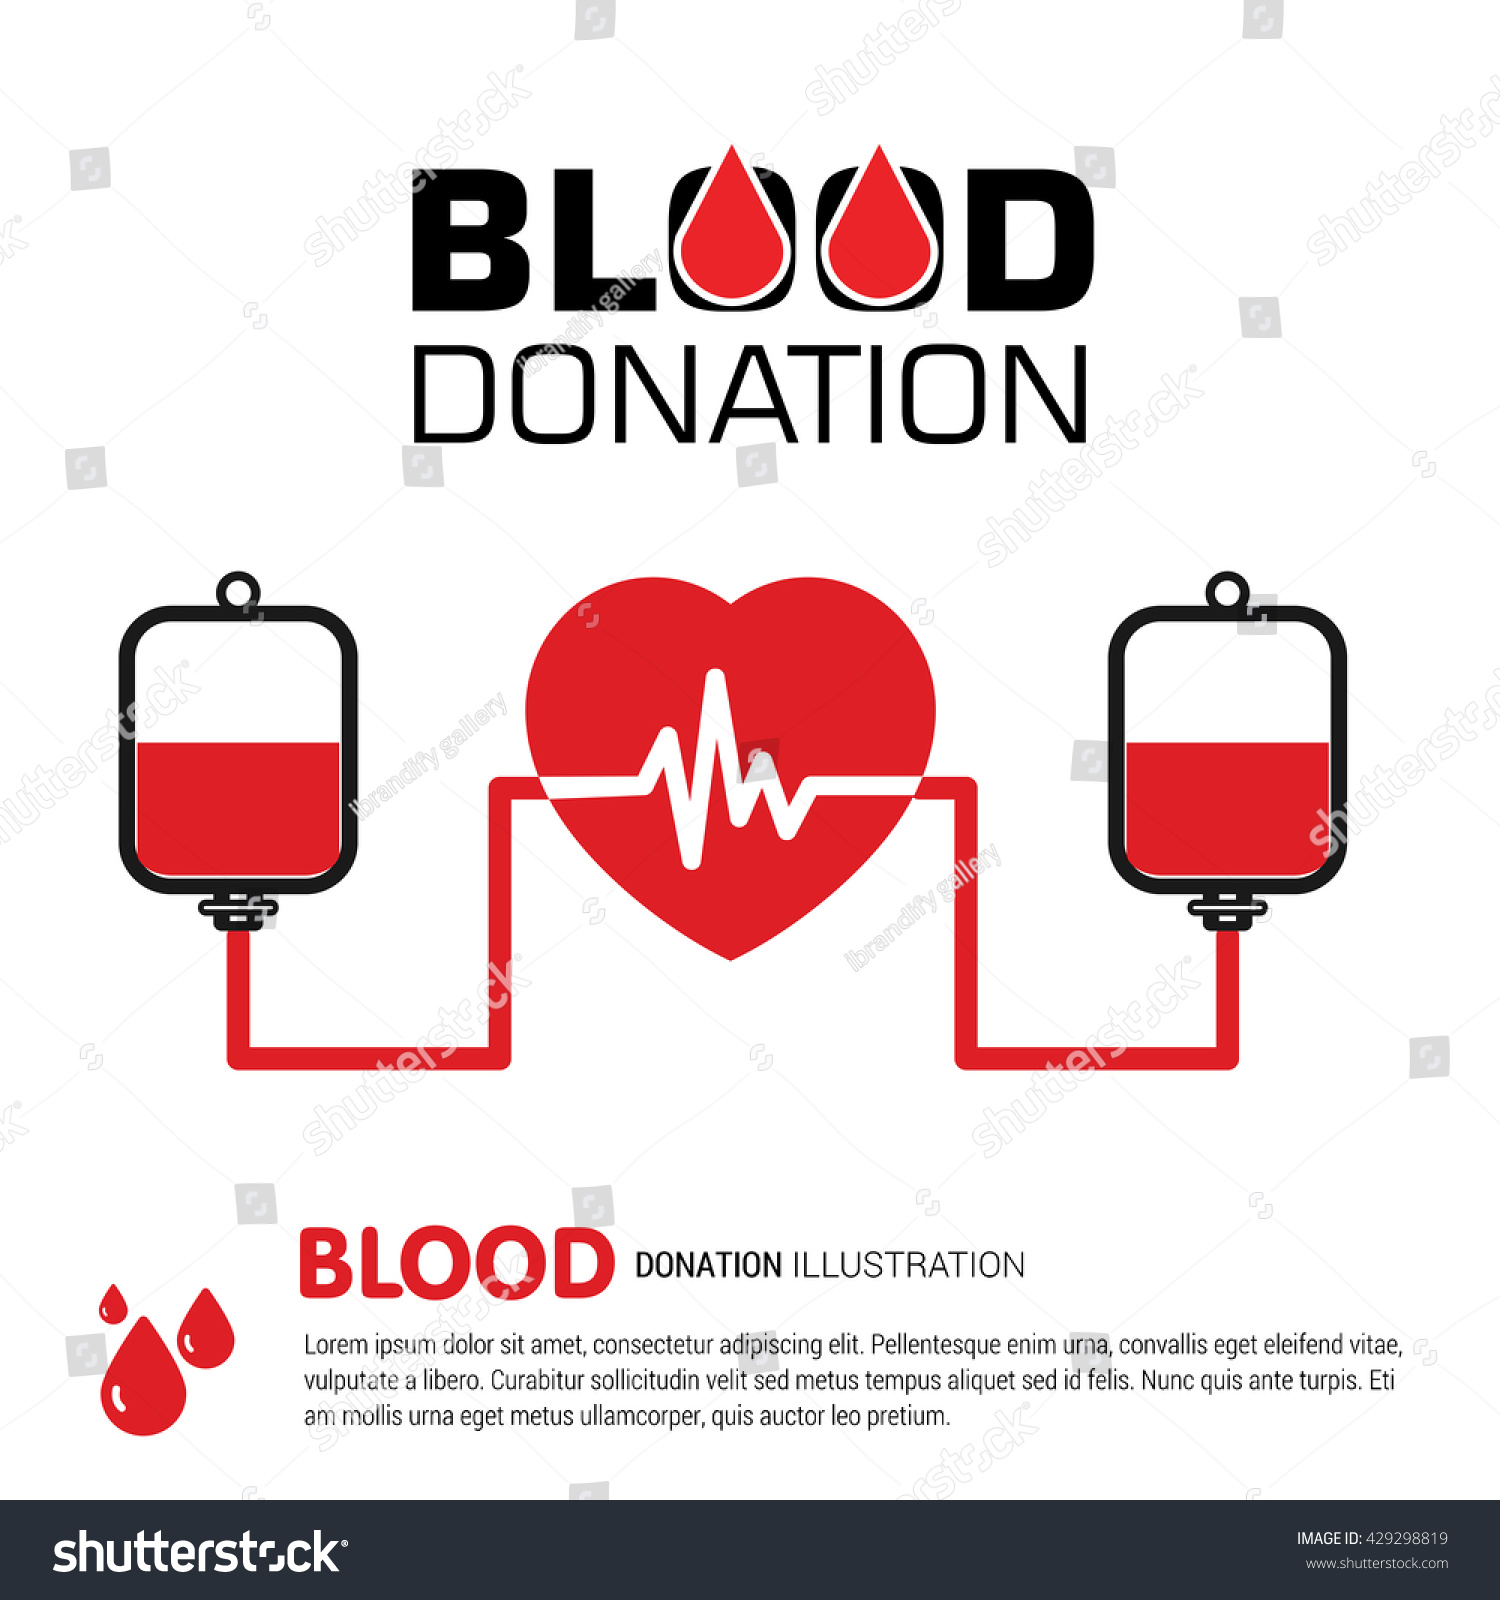 Blood Donation Blood Bank Donating Heart Stock Vector 429298819 Shutterstock